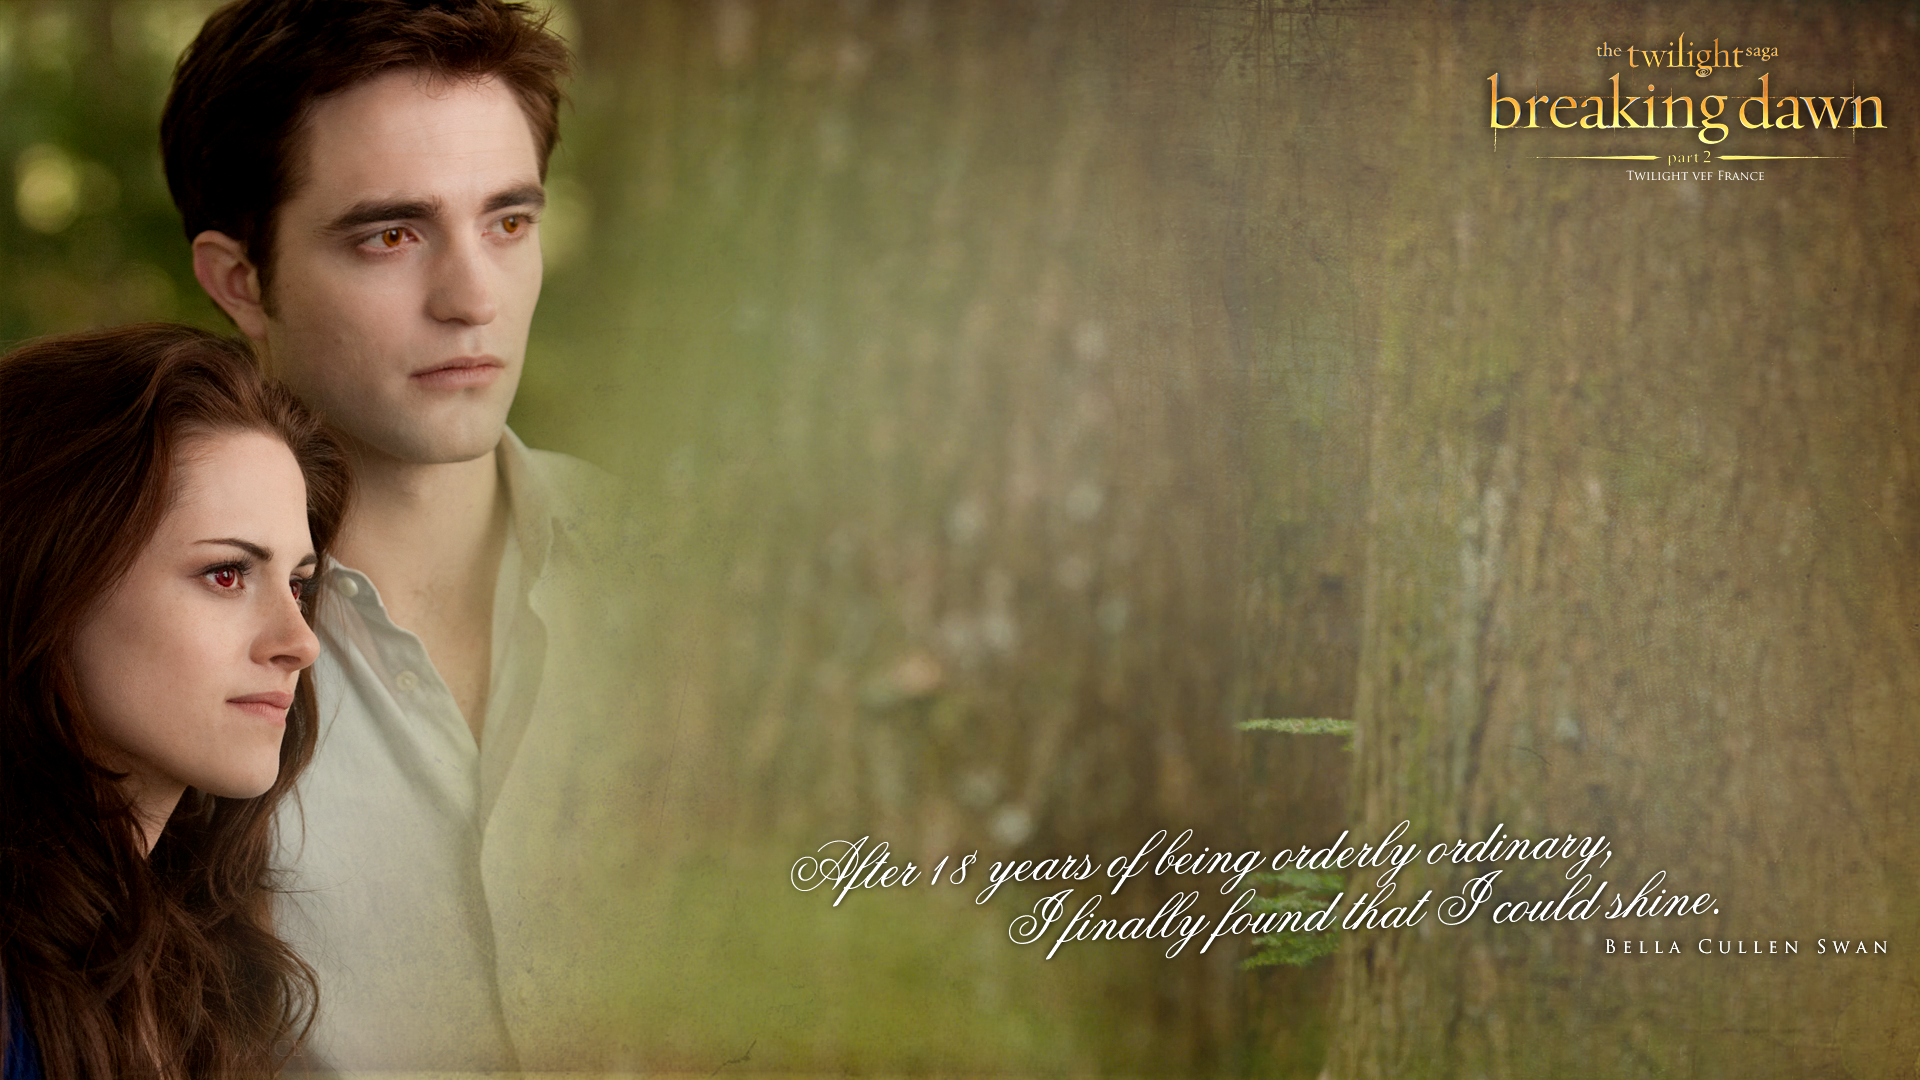 Great New Breaking Dawn Part 2 Wallpaper By Twilight Vef